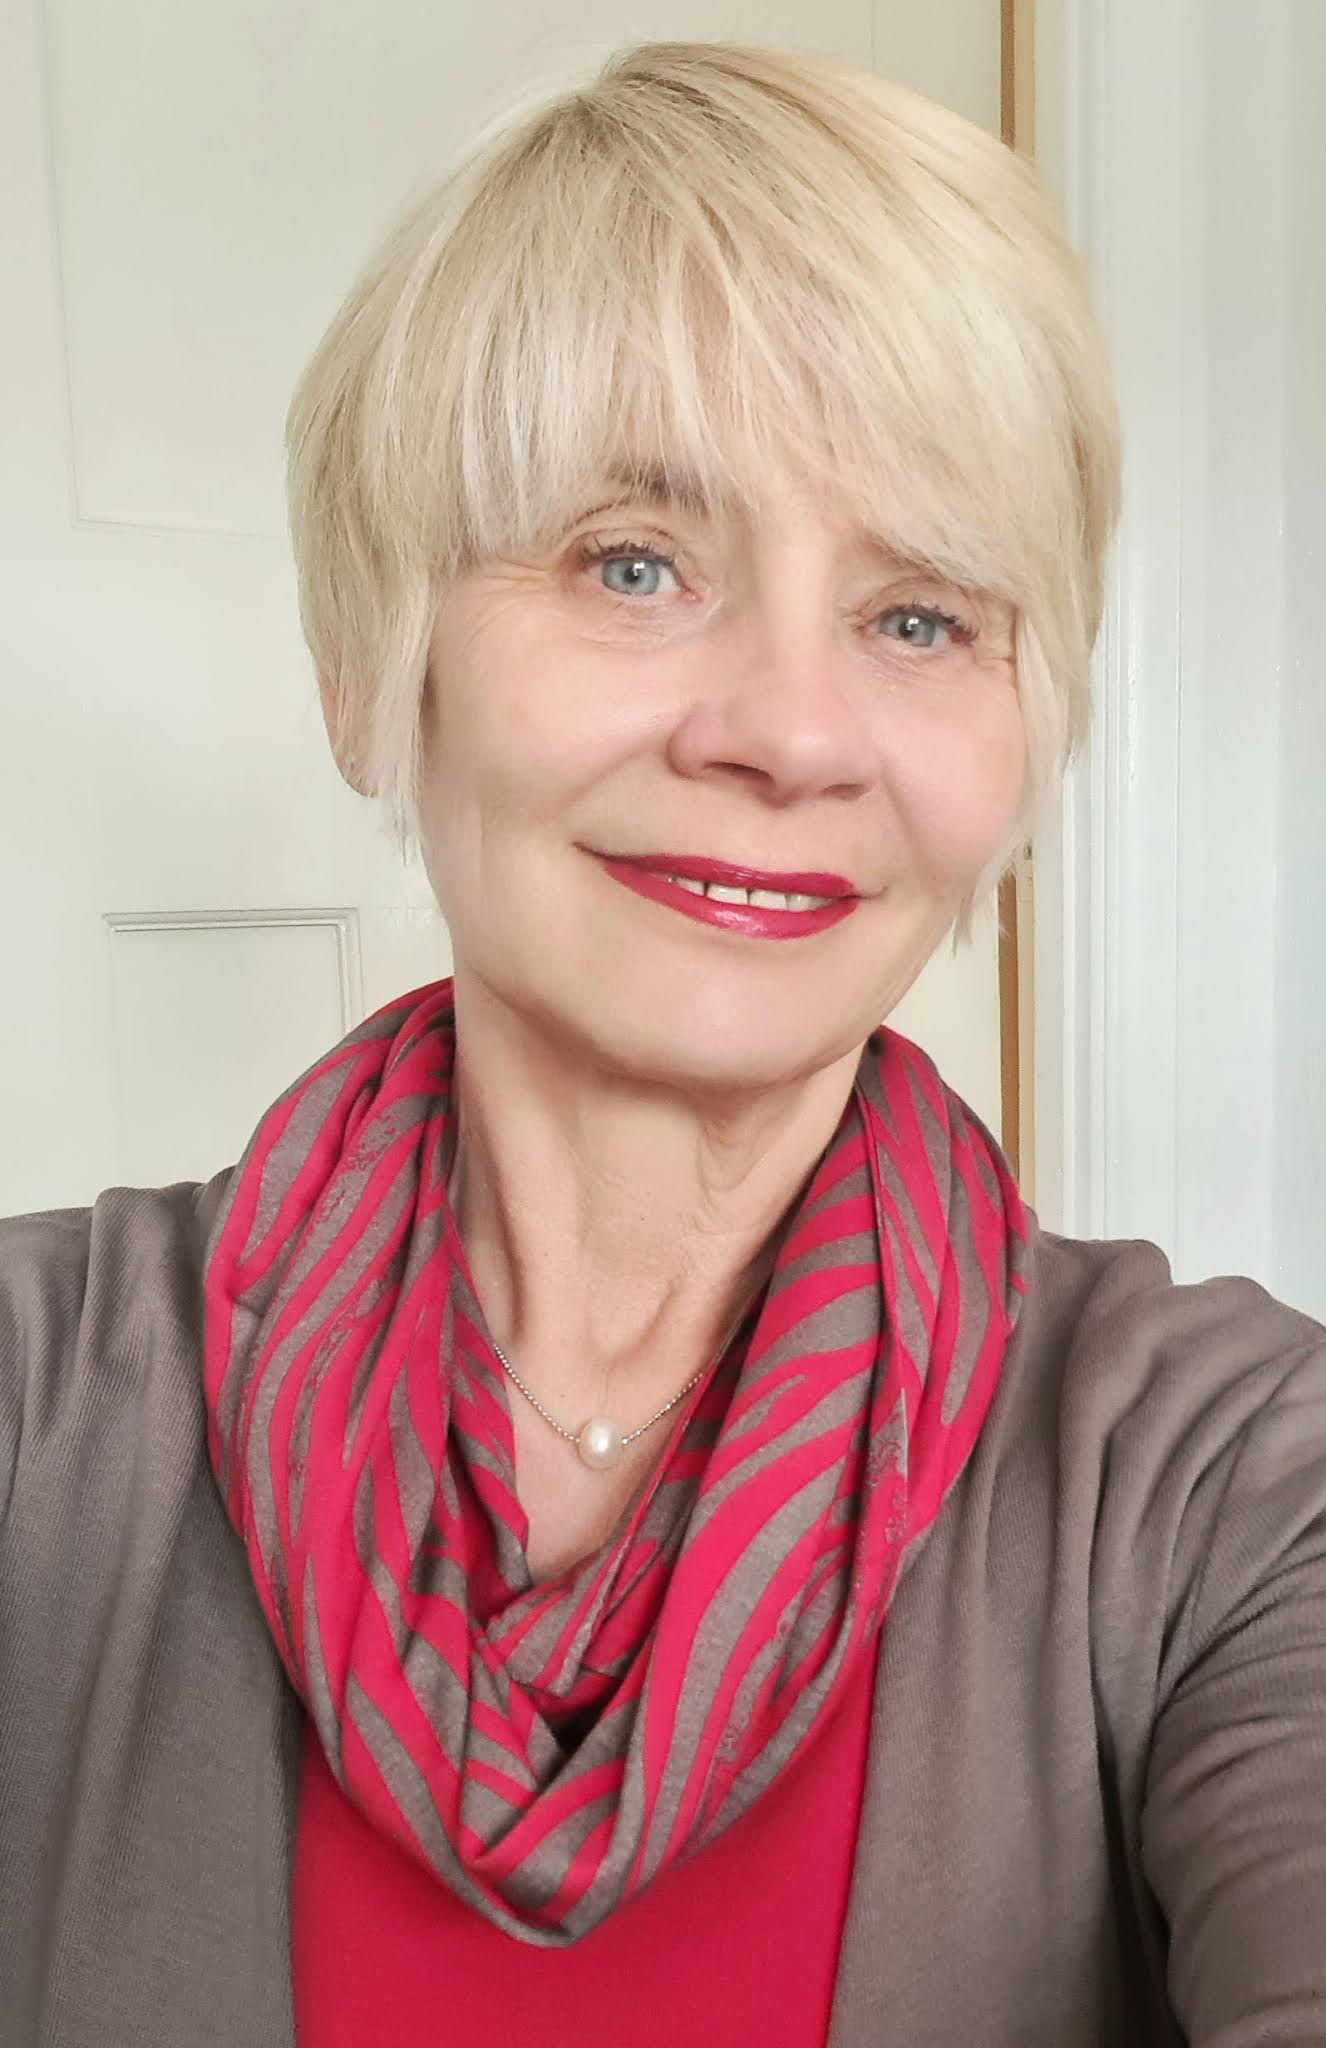 Over 50s blogger Gail Hanlon from Is This Mutton in red and beige